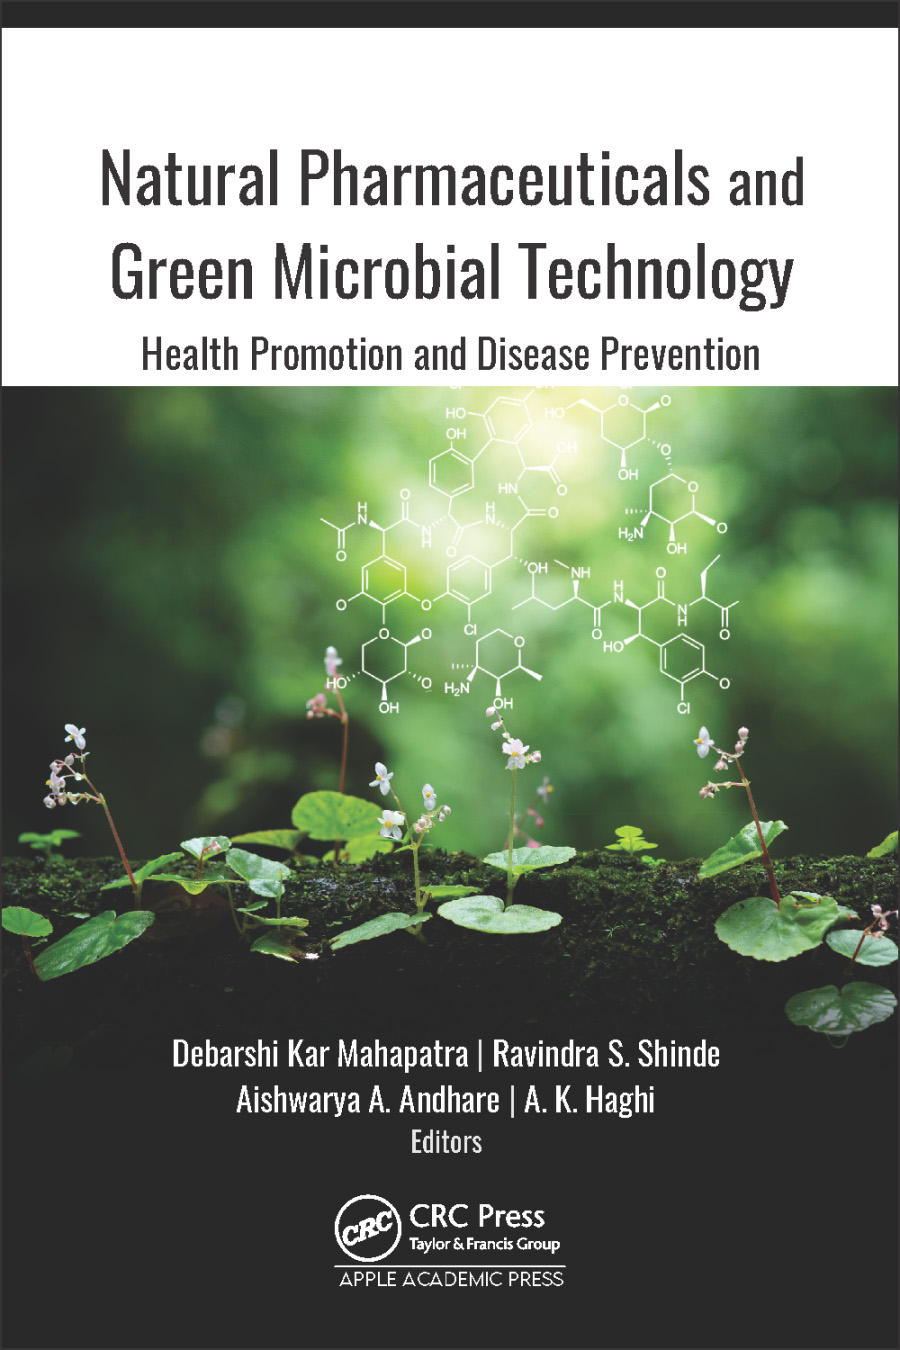 Natural Pharmaceuticals and Green Microbial Technology: Health Promotion and Disease Prevention book cover